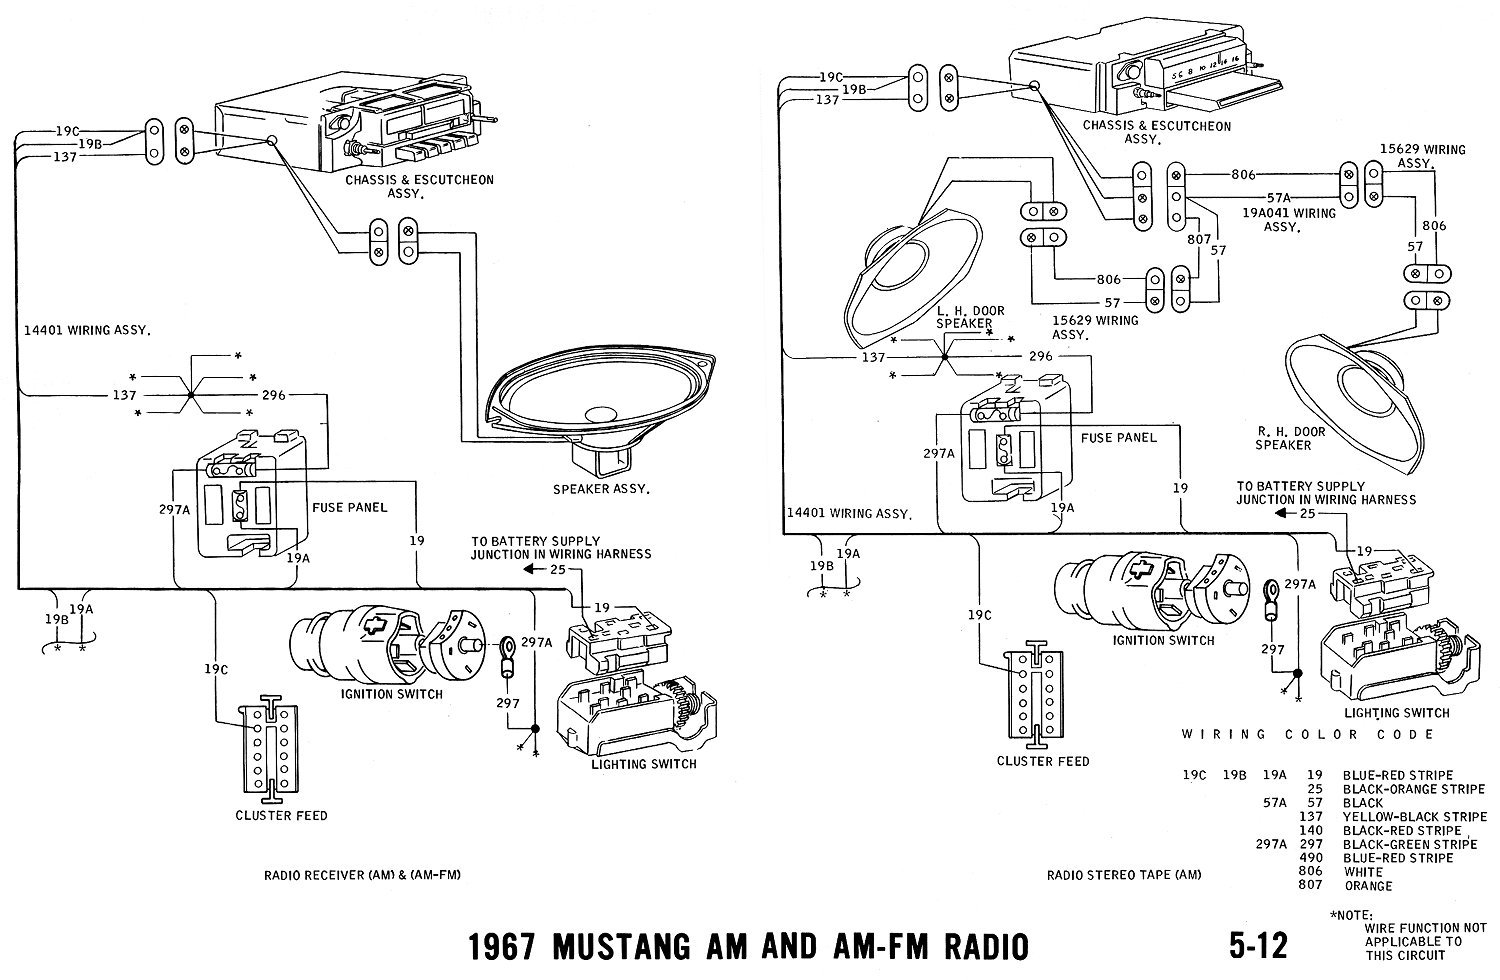 hight resolution of 1967 mustang wiring diagram free wiring diagram for you u2022 1967 mustang turn signal switch wiring diagram 1967 mustang wiring diagram free